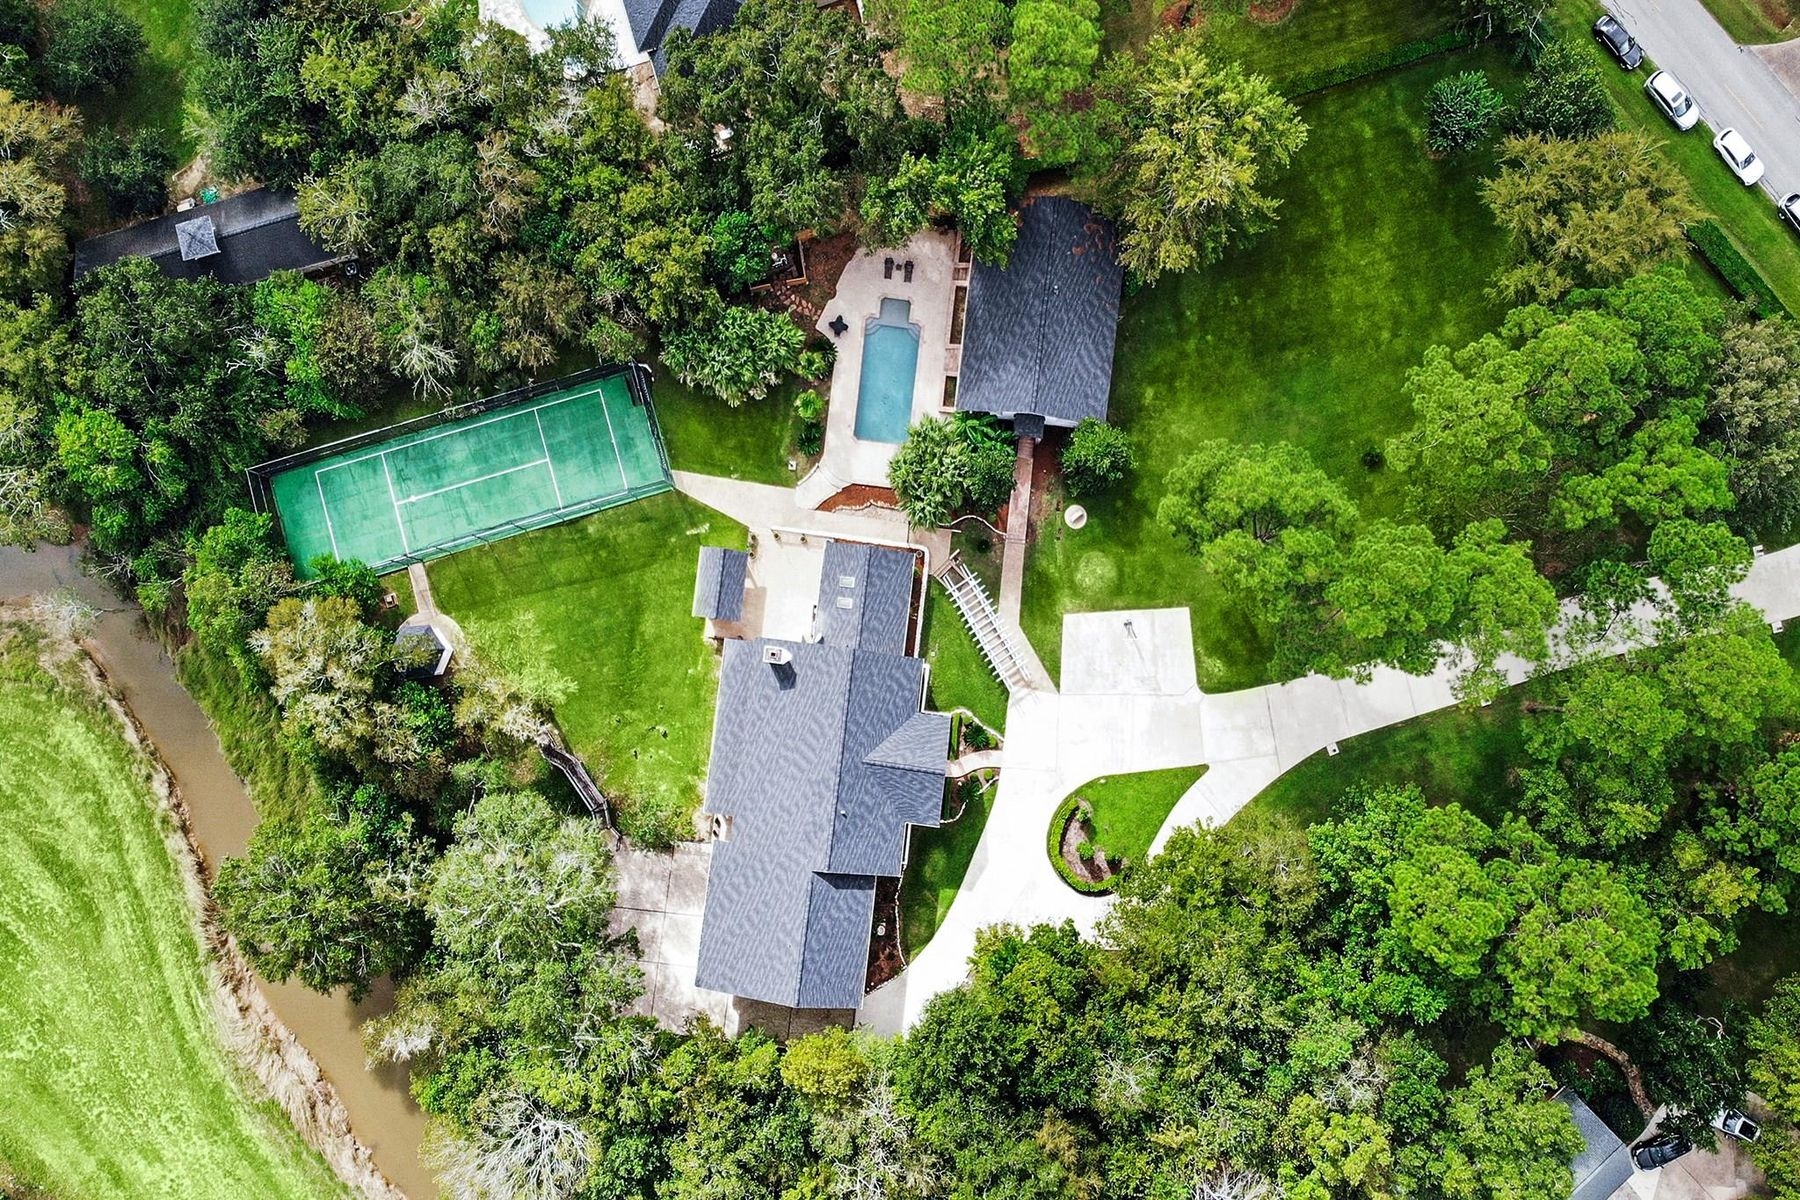 Single Family Homes for Sale at 809 Cowards Creek Drive Friendswood, Texas 77546 United States